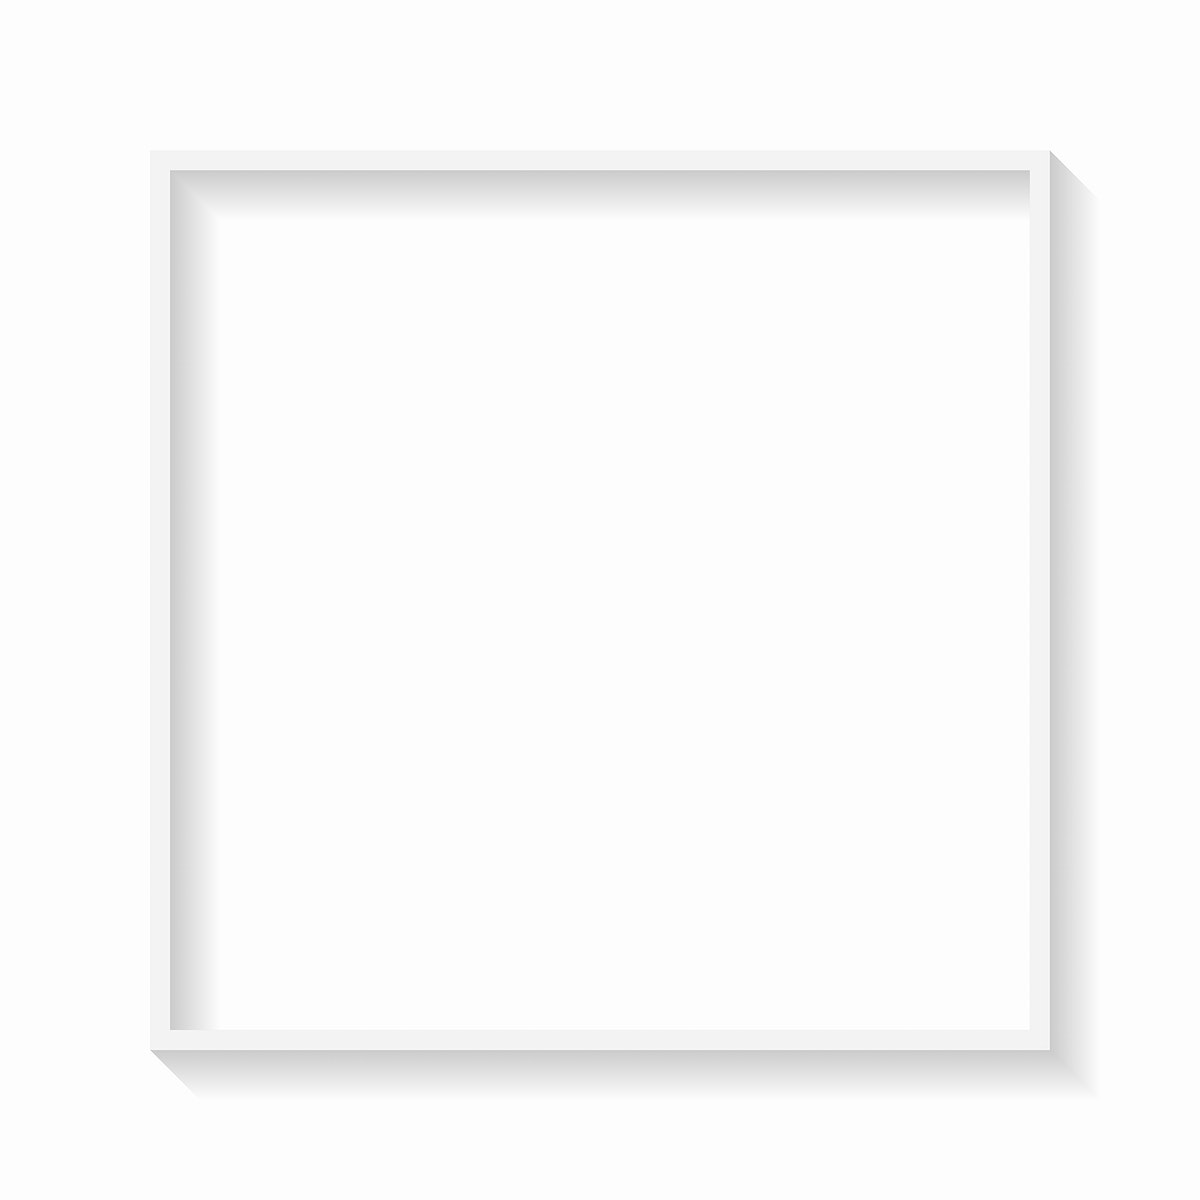 Square white frame background template vector